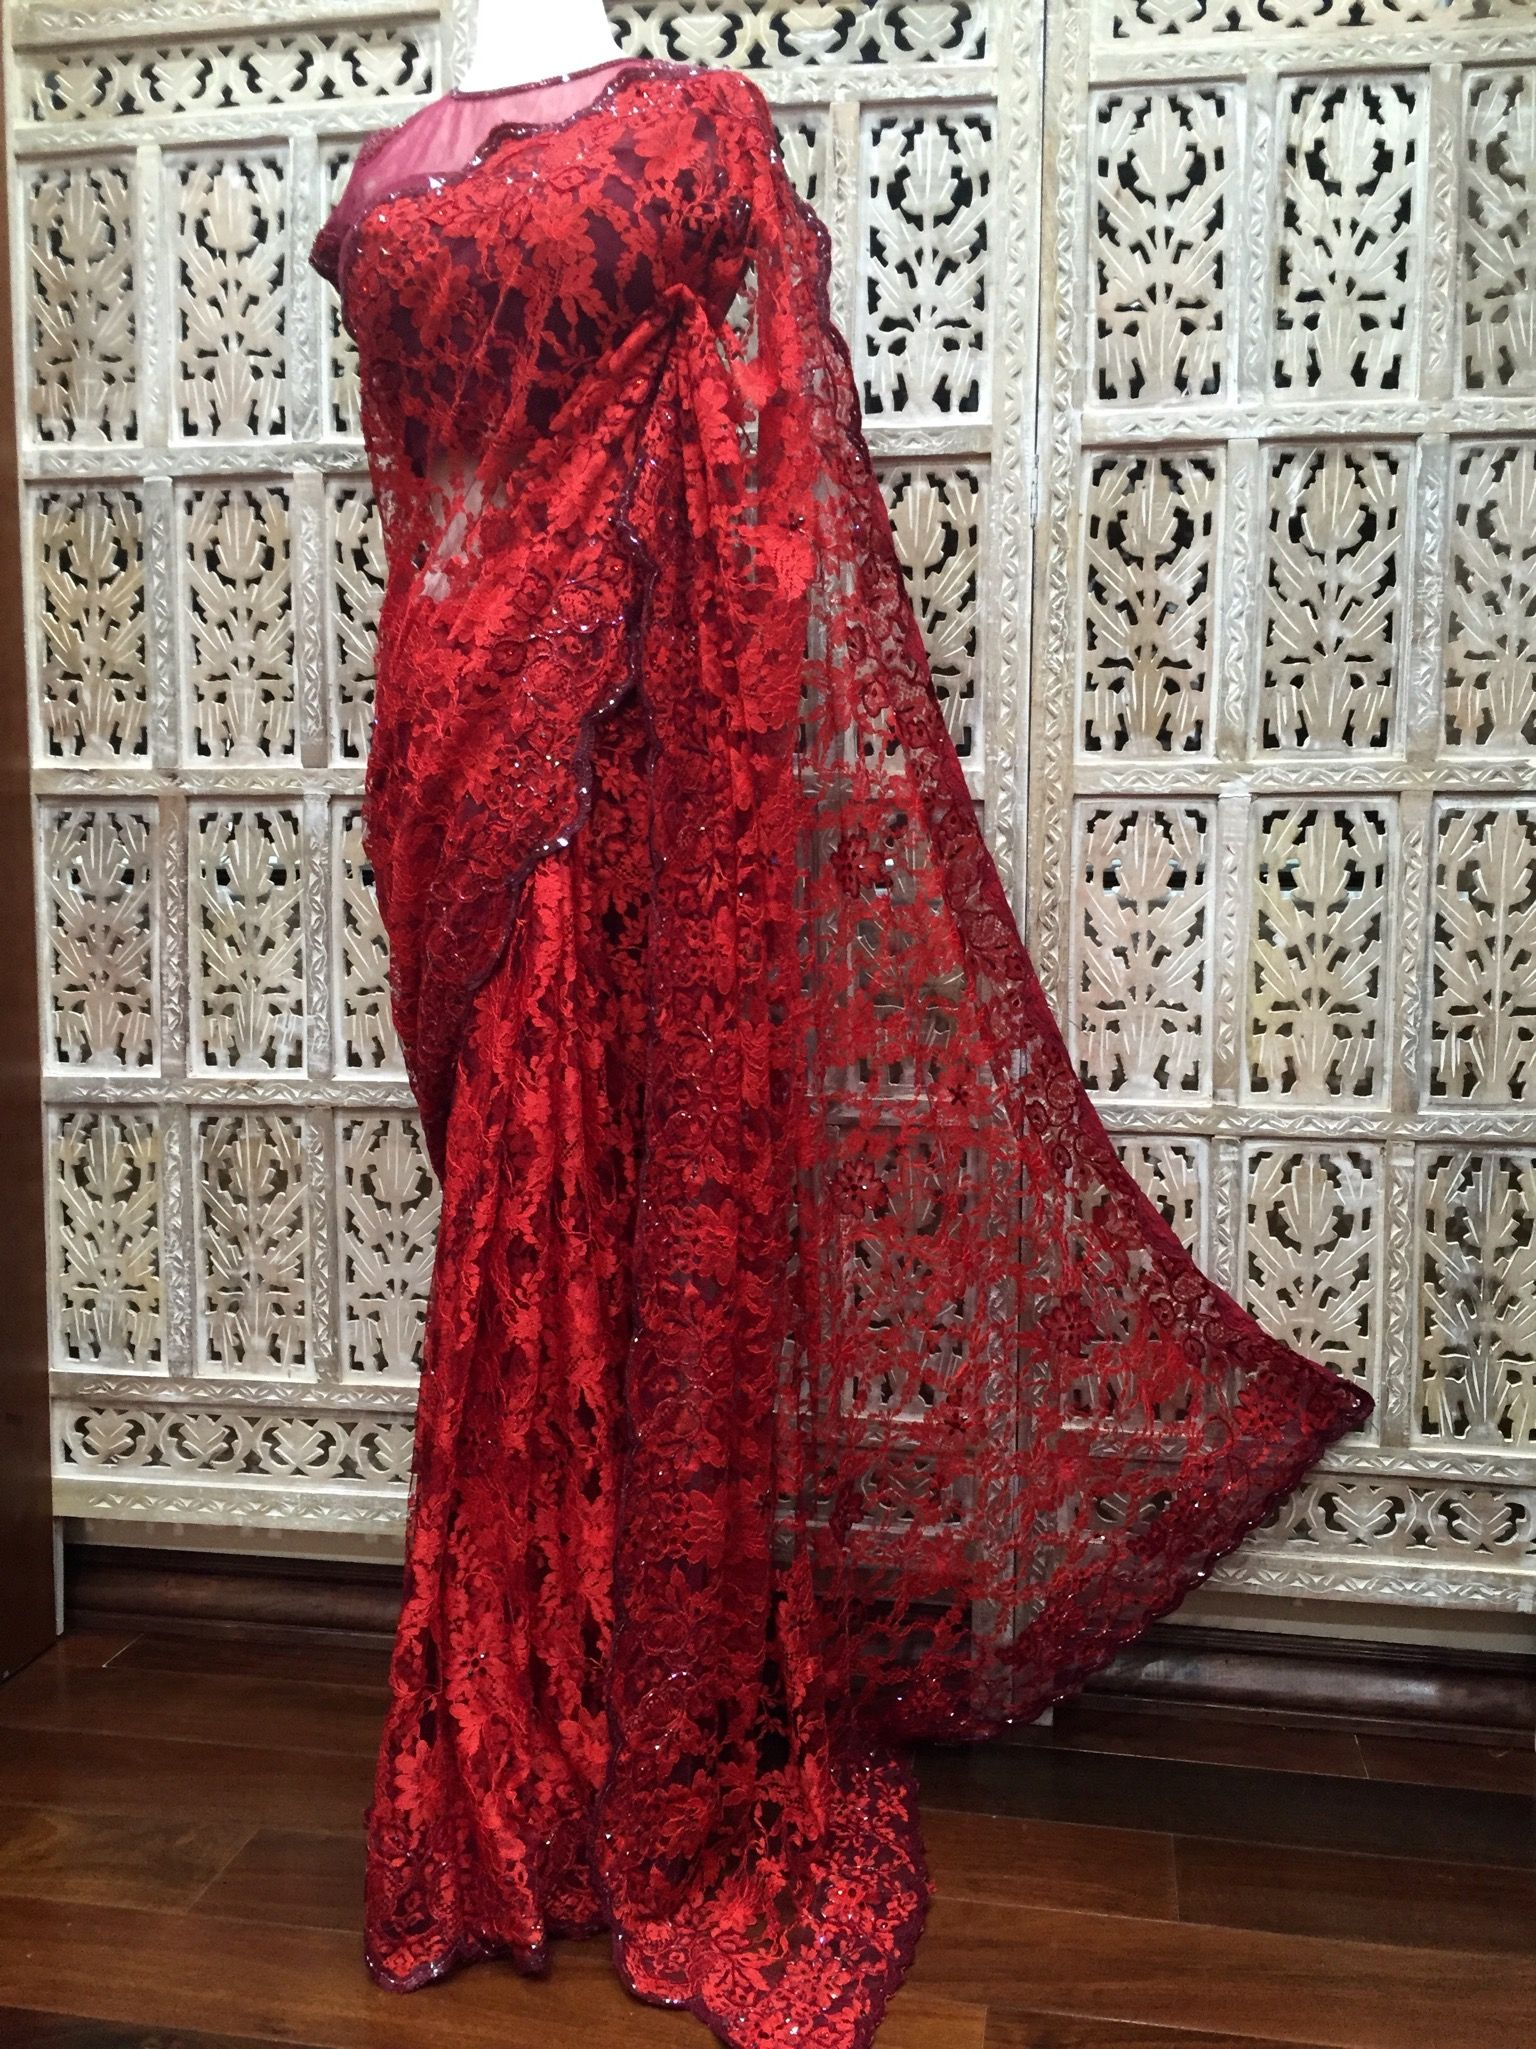 Scarlet Red And Burdy Dual Tone French Chantilly Lace Saree Embelished With Crystals Beads Sequin Custom Colors Available For More Info Contact